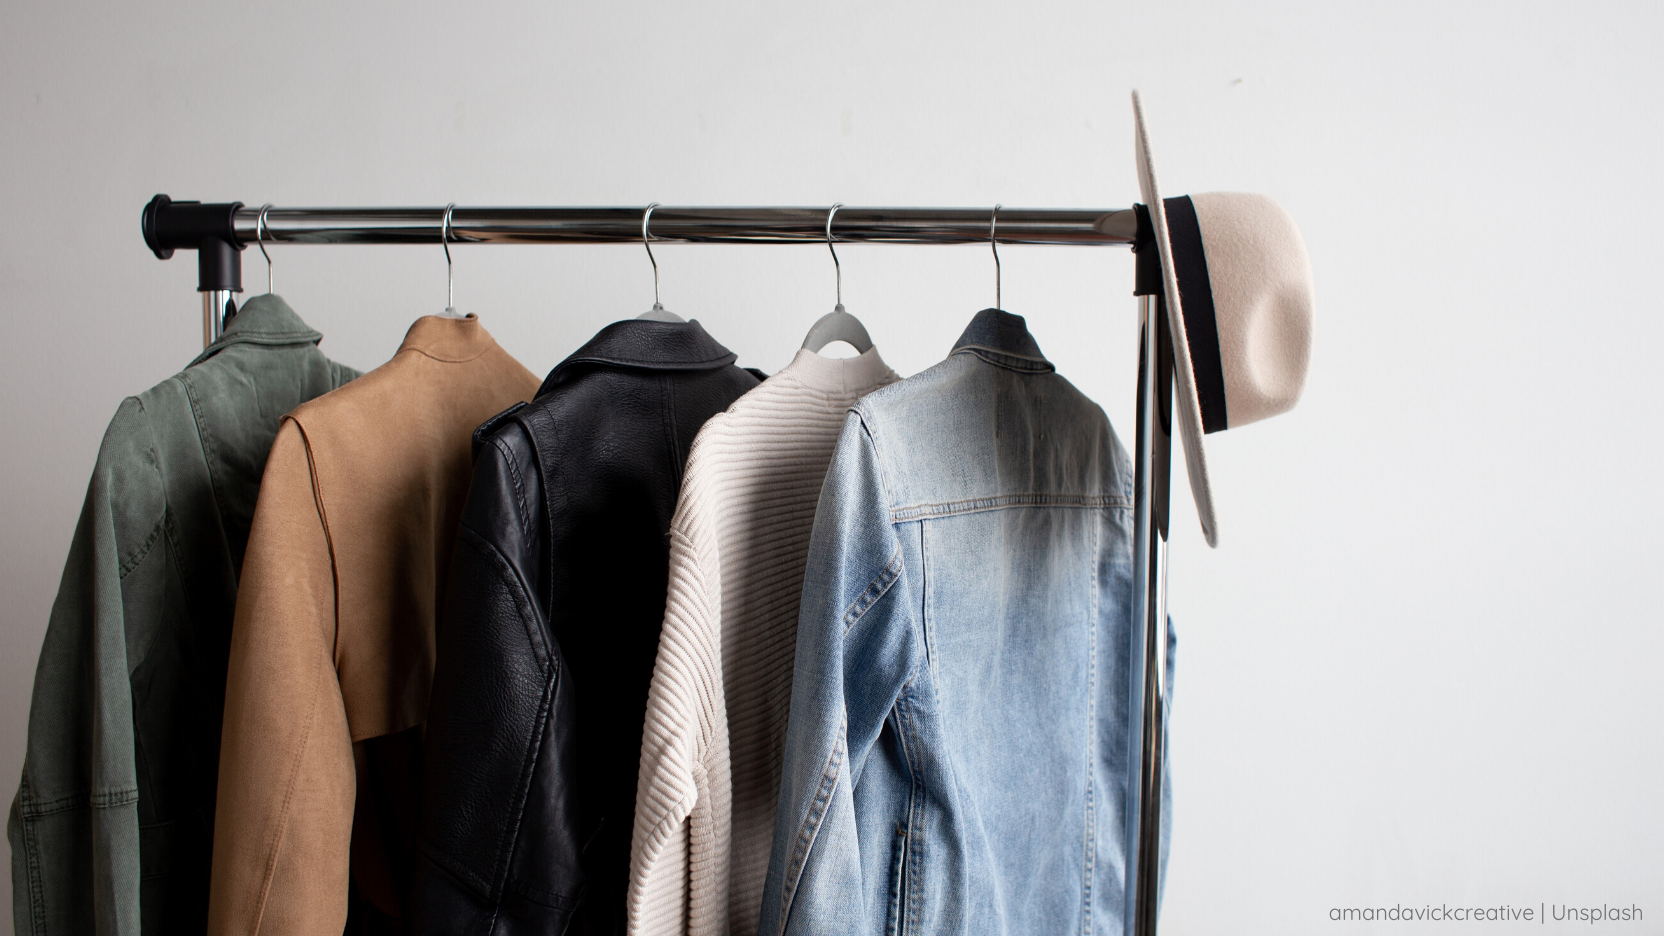 The shocking truth about our fast fashion obsession